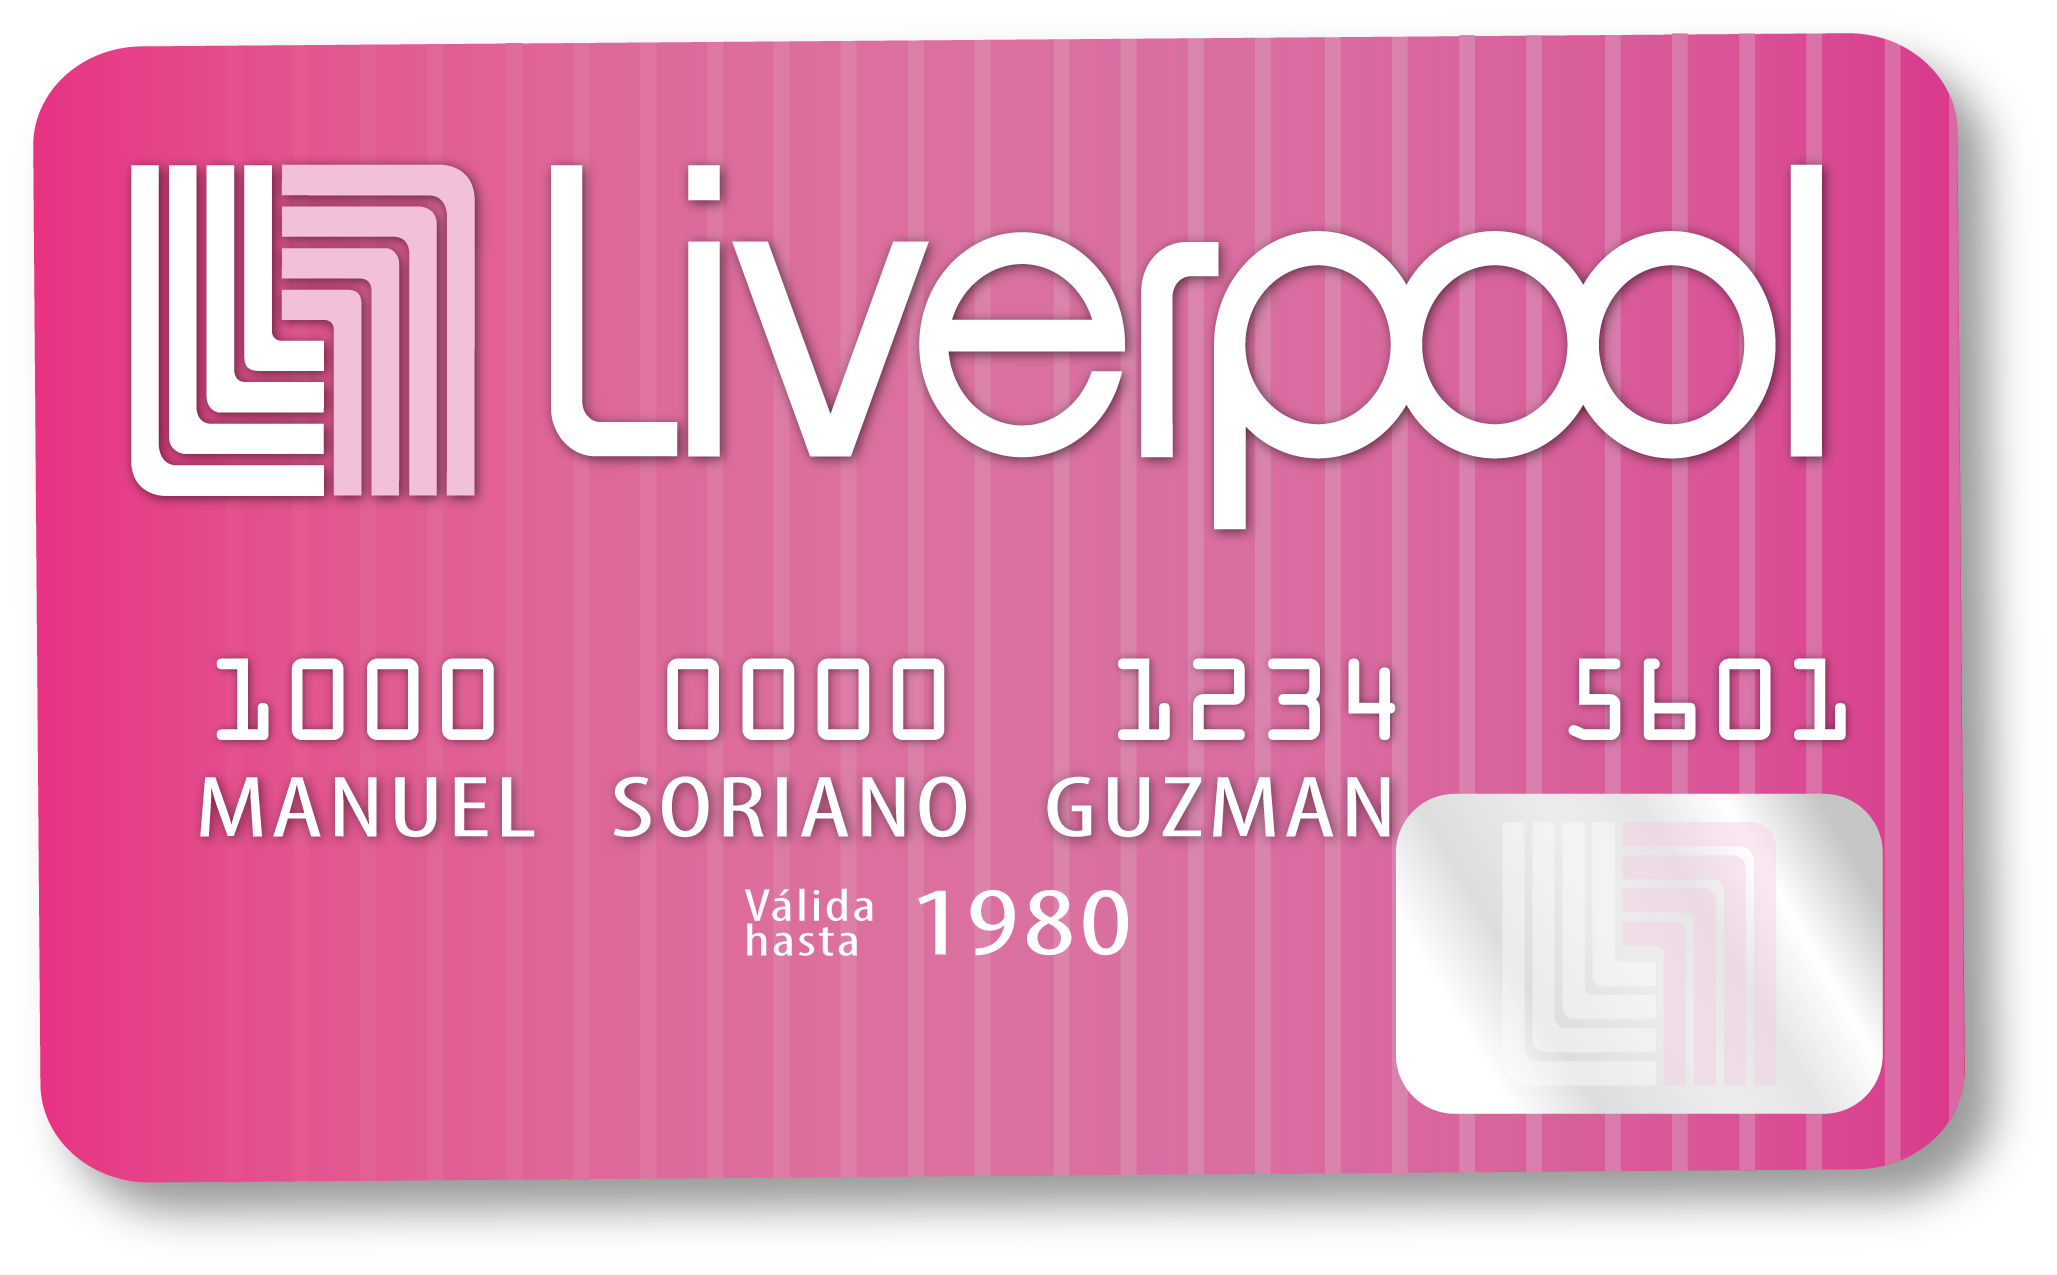 This Is A Credit Card Of A Famous Shop Called Liverpool, I